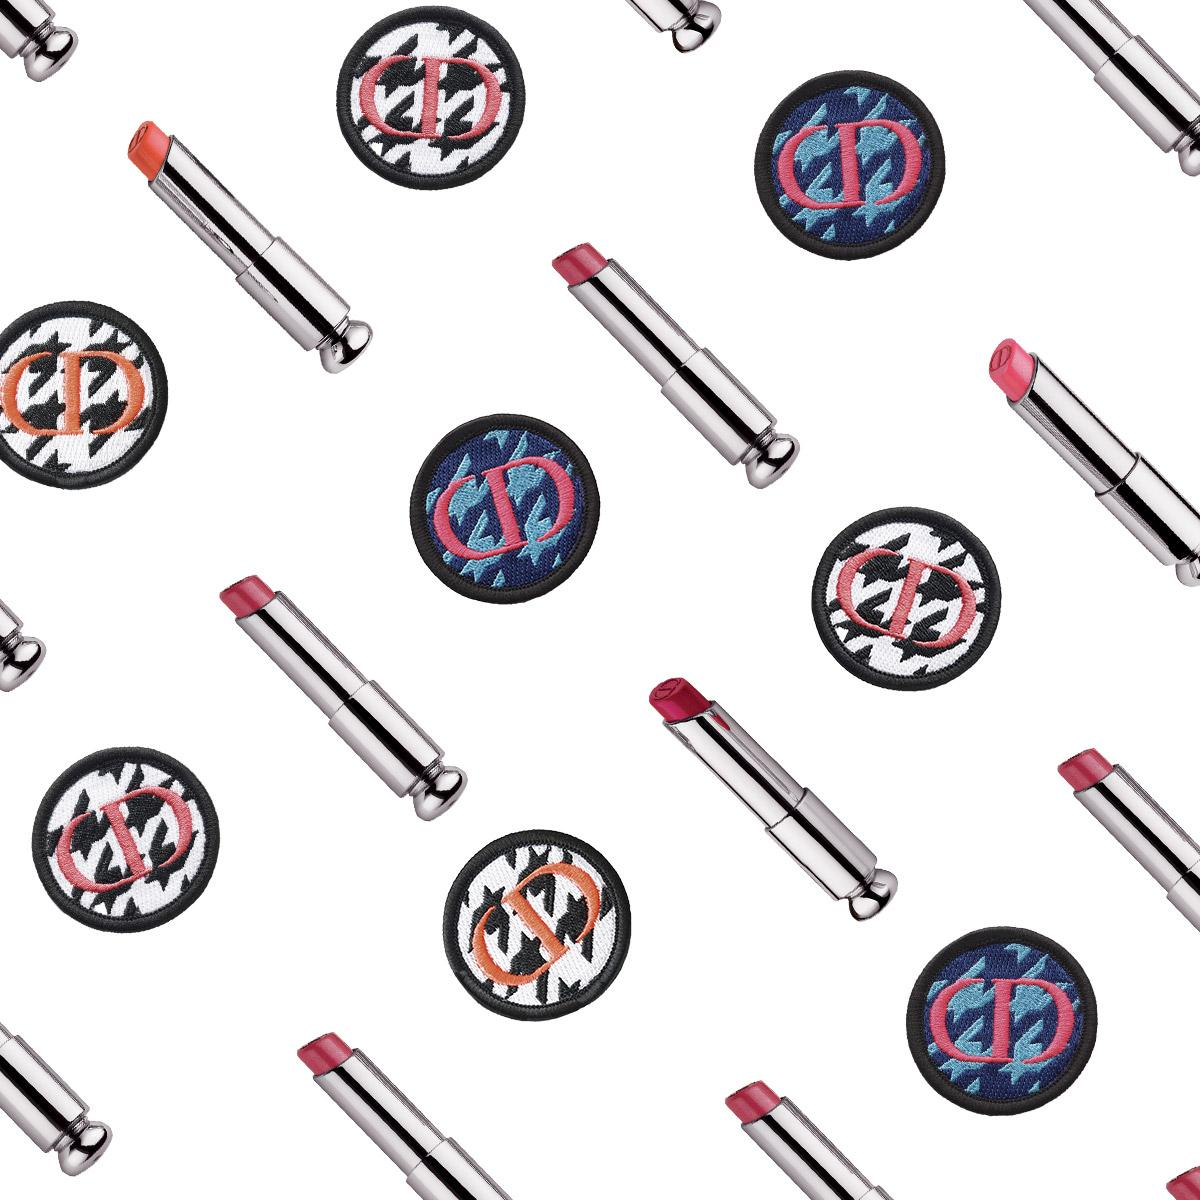 // Dior Addict, the new lipstick // The new fashion accessory. #shinedontbeshy http://t.co/74aBzuqy1W